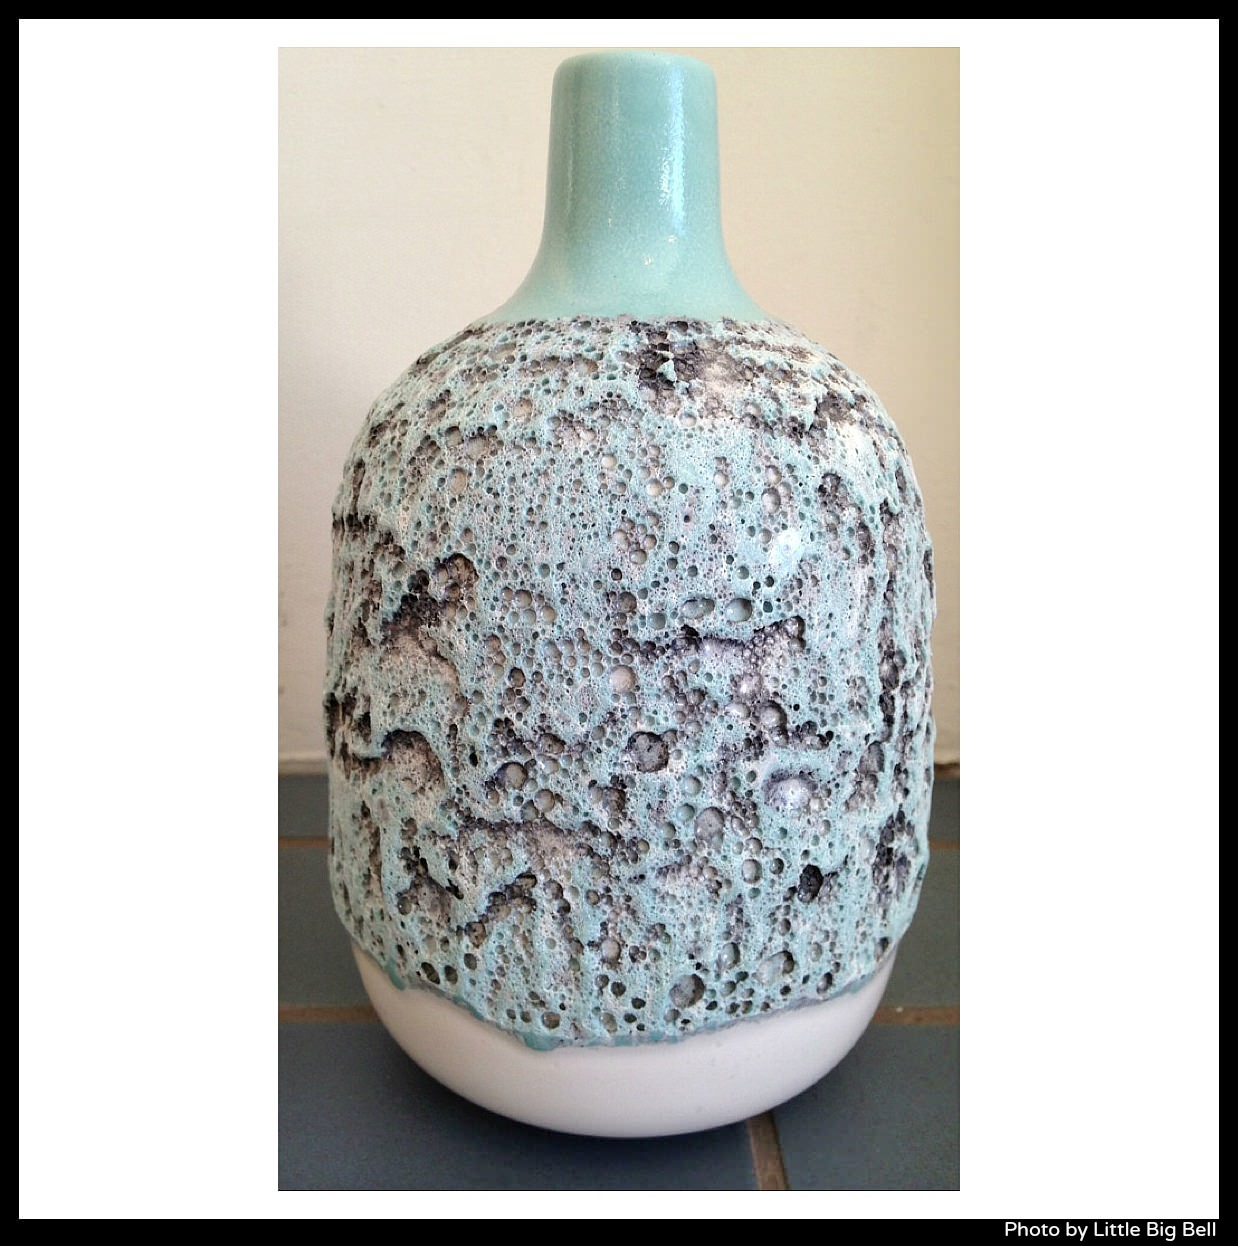 Littlebigbell Heath Ceramics La Edith Heath And Adam